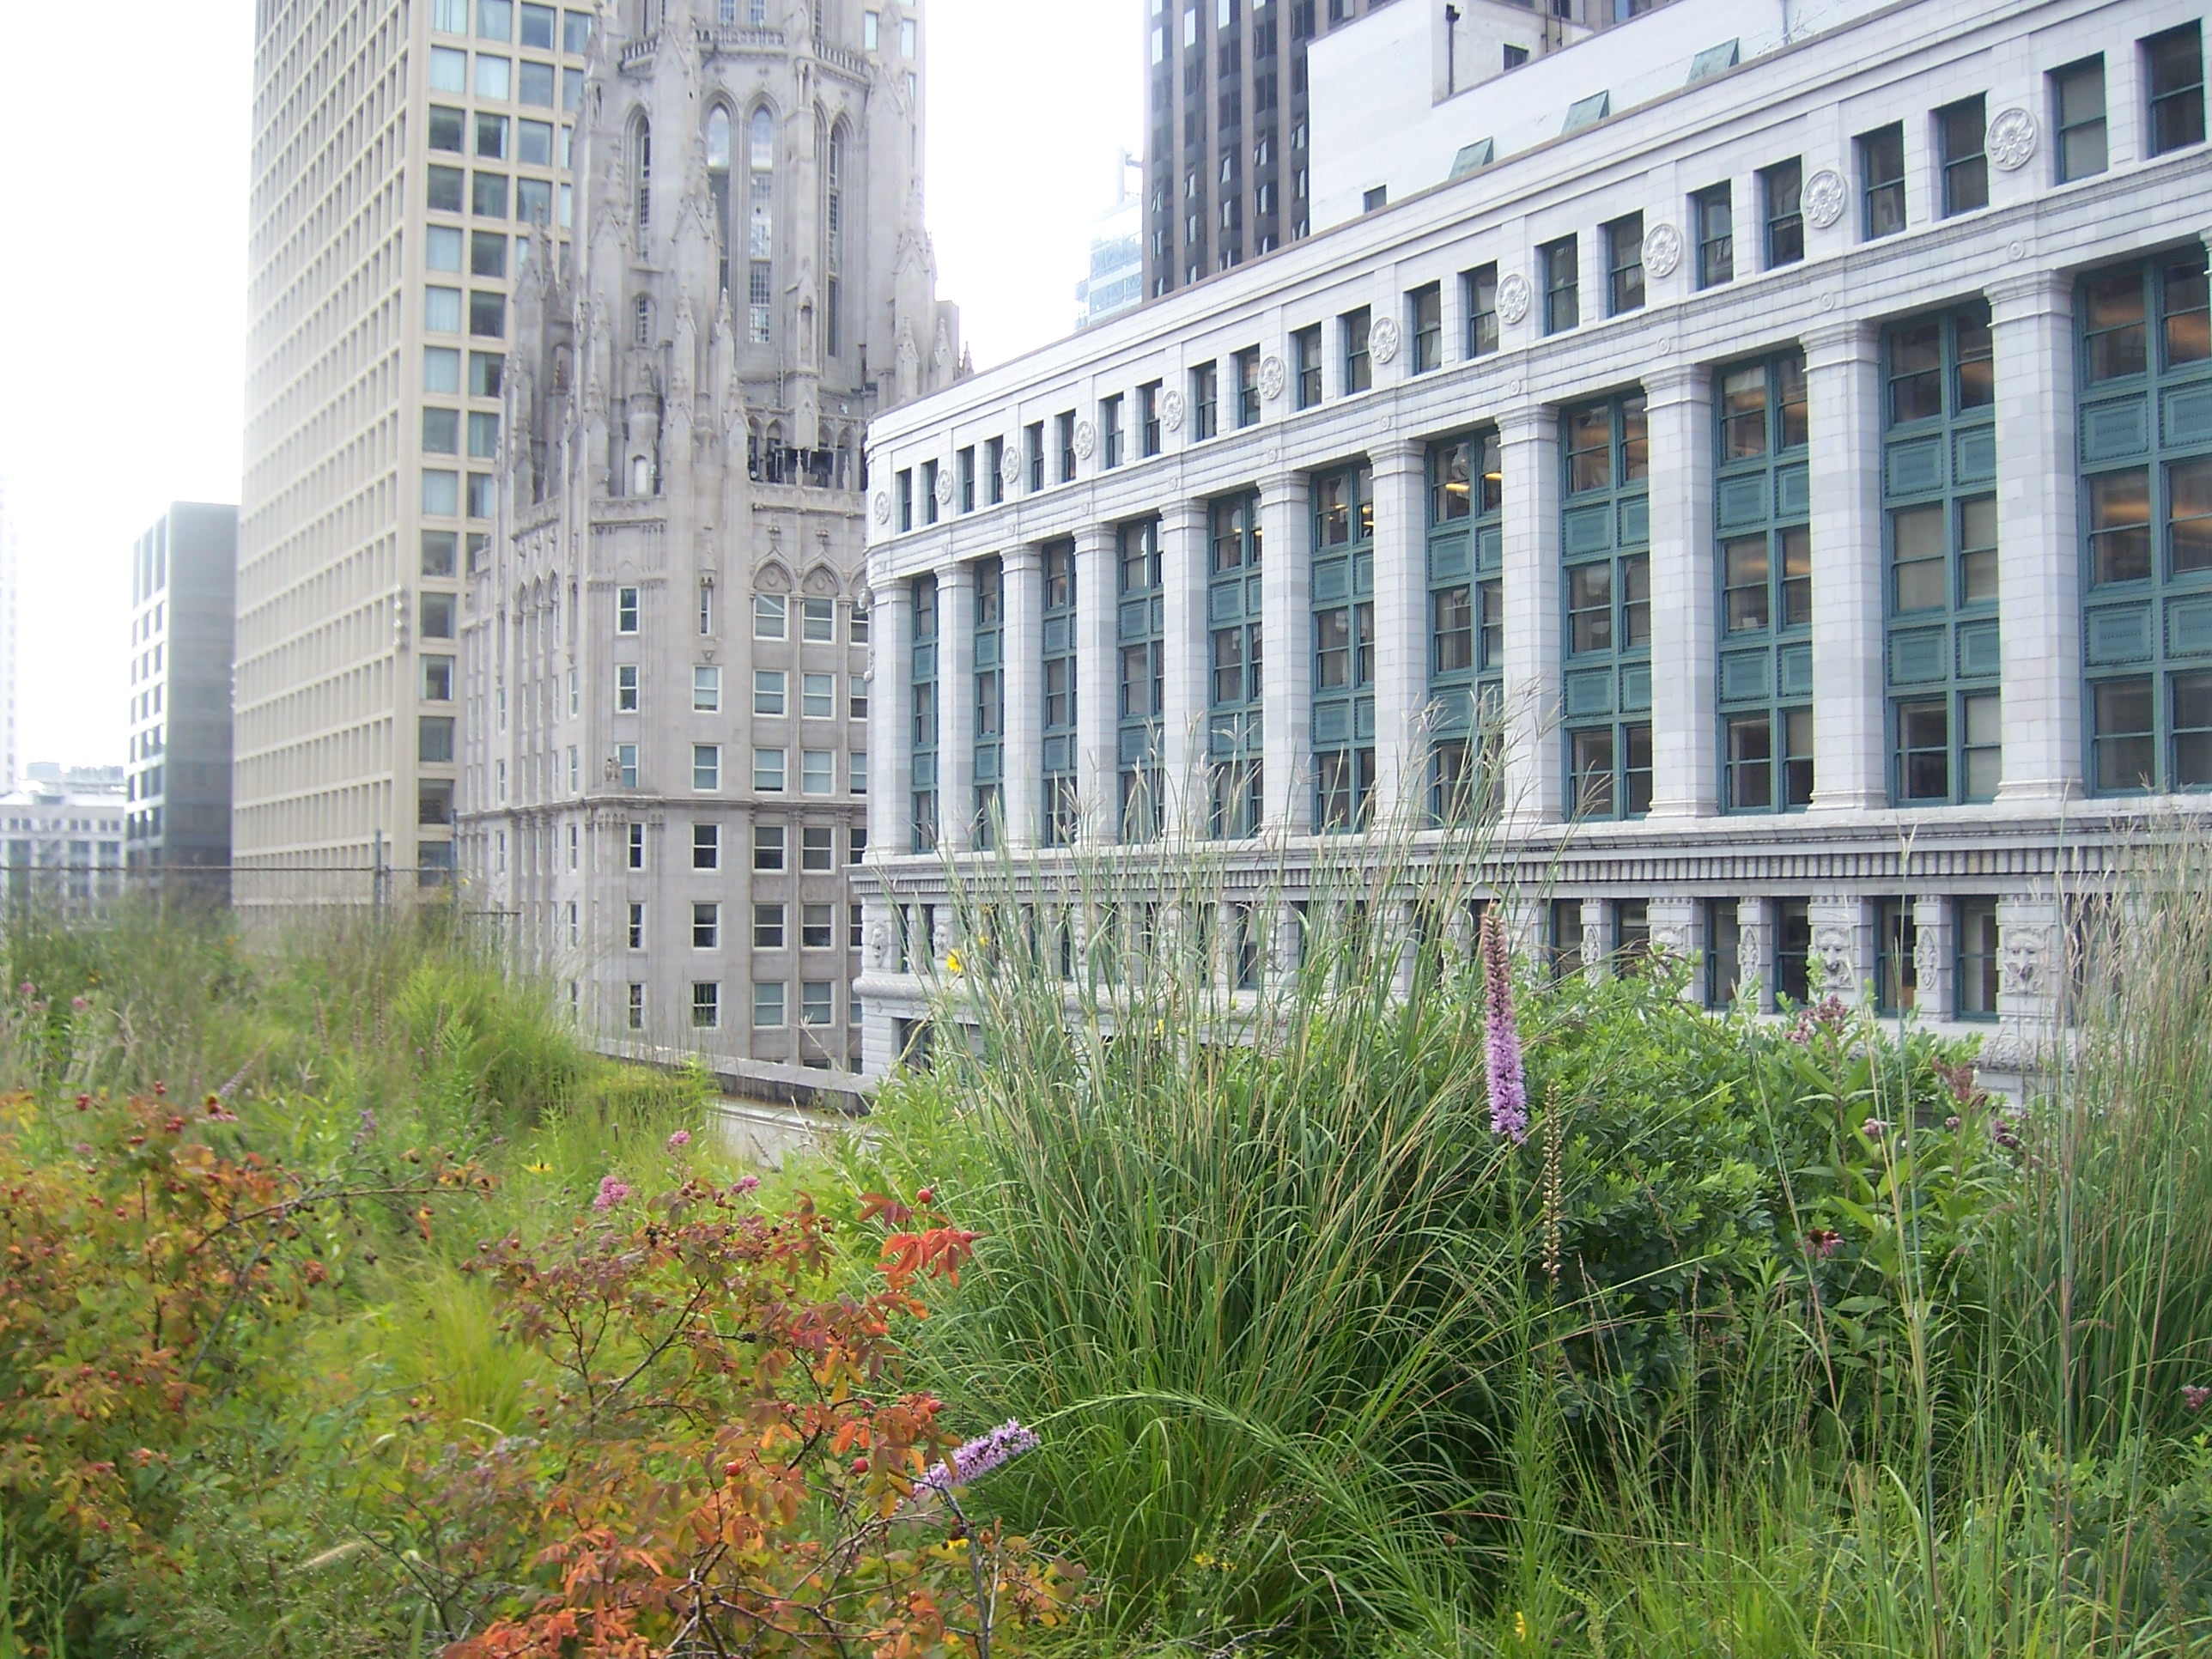 File:Chicago City Hall Green Roof 02